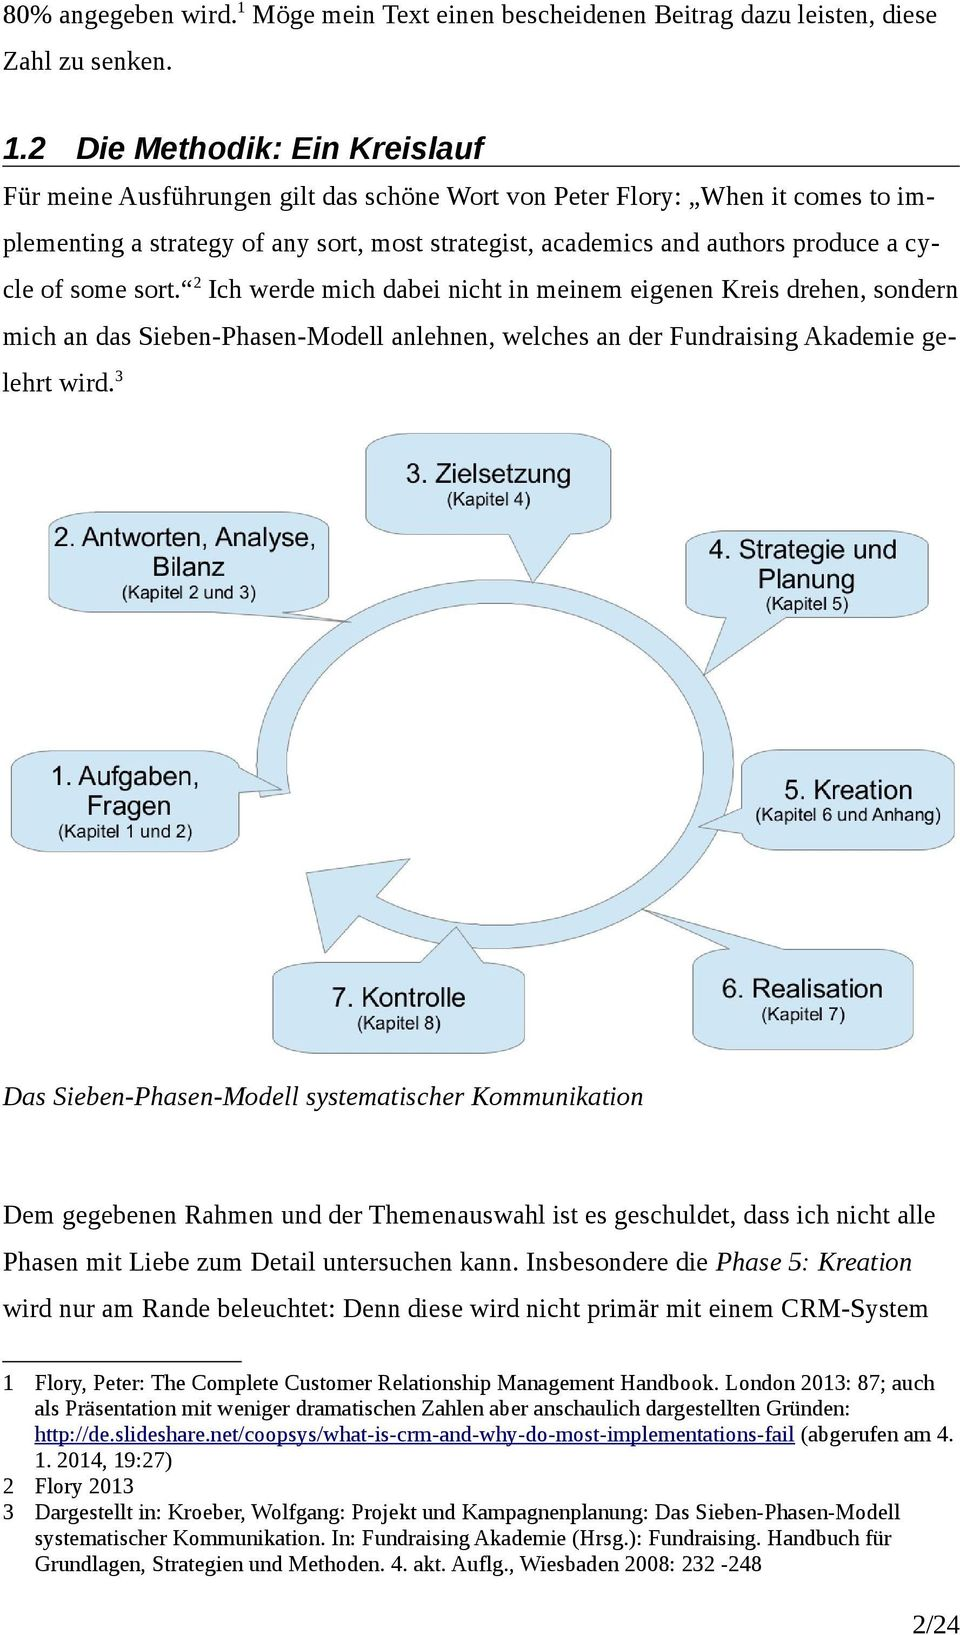 2 Die Methodik: Ein Kreislauf Für meine Ausführungen gilt das schöne Wort von Peter Flory: When it comes to implementing a strategy of any sort, most strategist, academics and authors produce a cycle